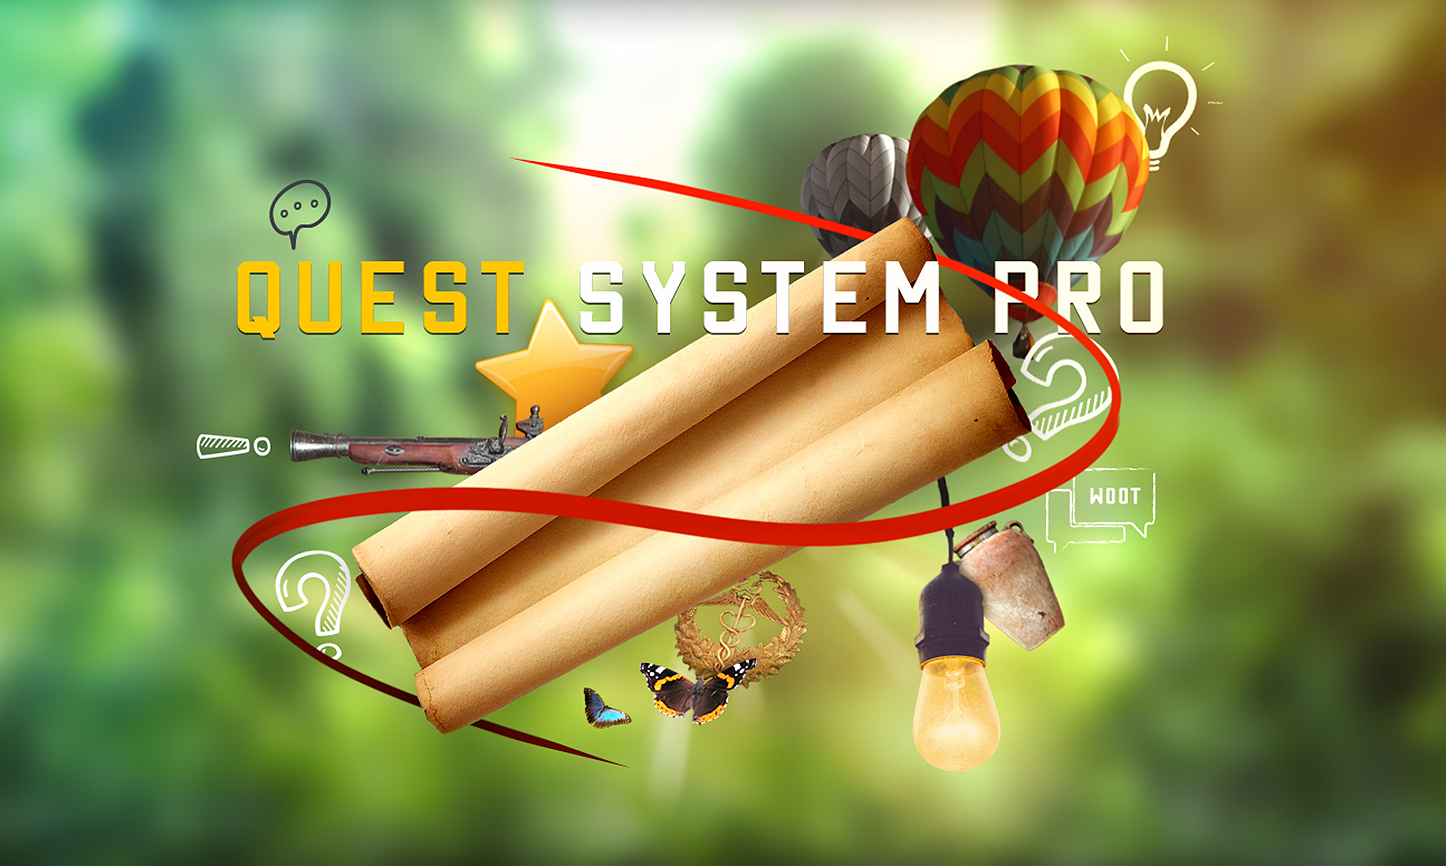 Quest System Pro